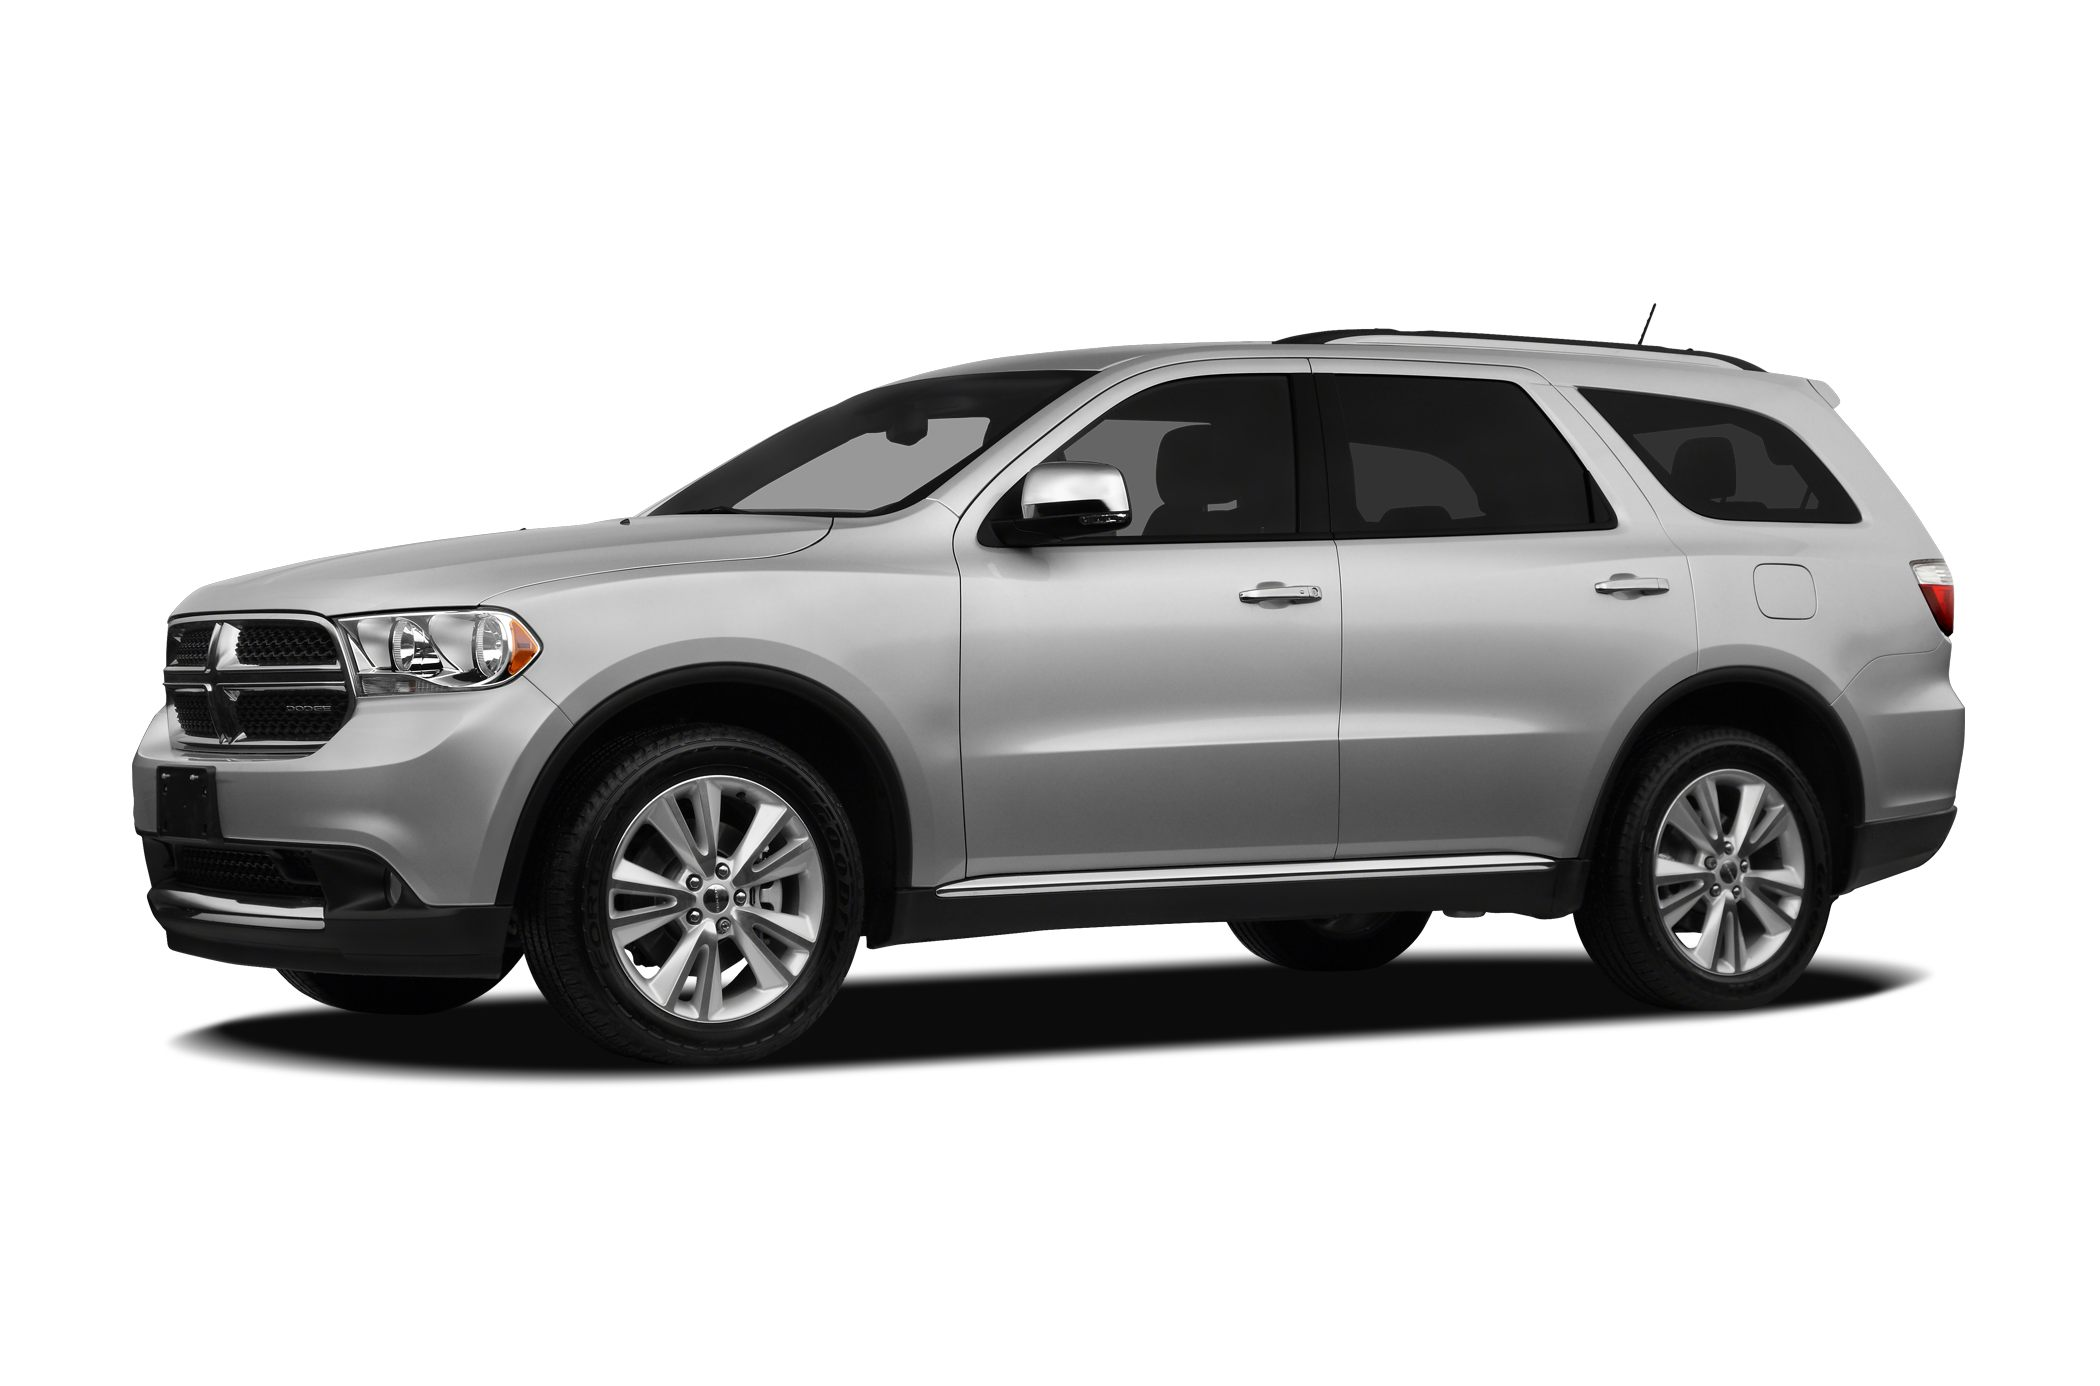 2012 Dodge Durango Crew Other features include Bluetooth Power locks Power windows Rear air co